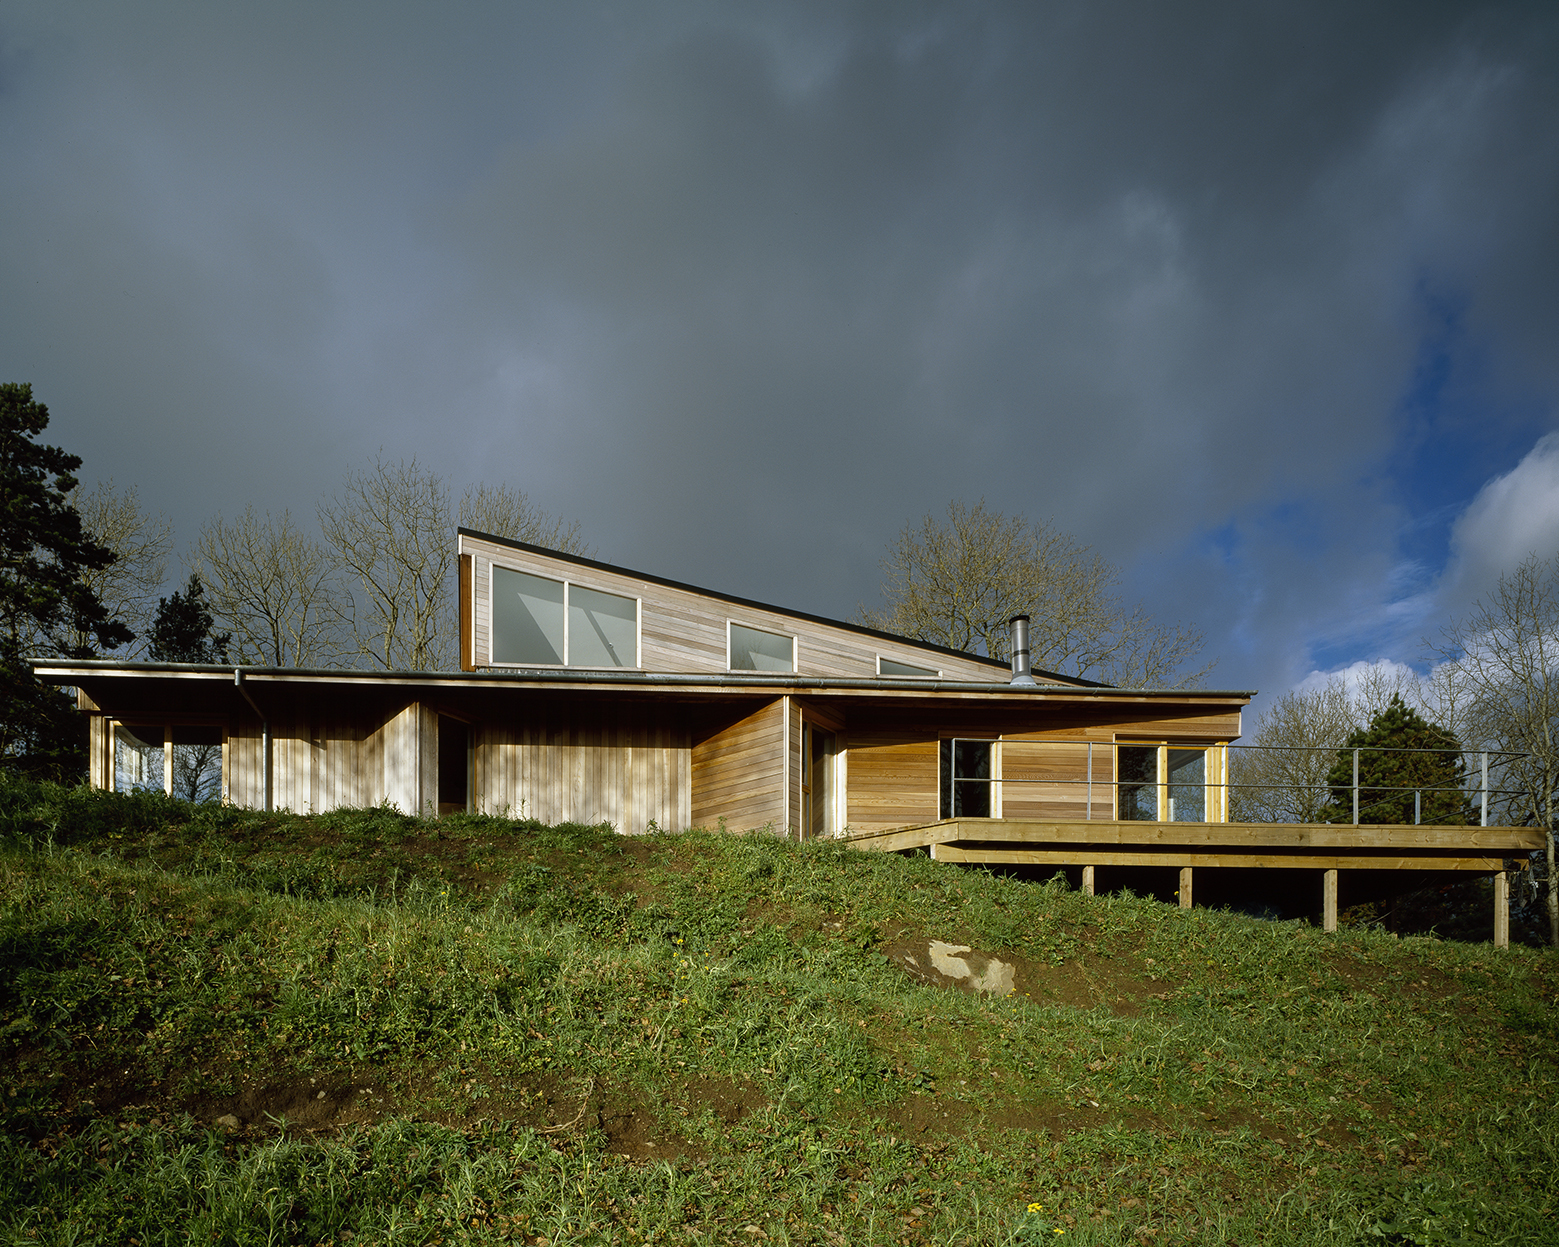 Casa Carton Levert de Macgabhann Architects